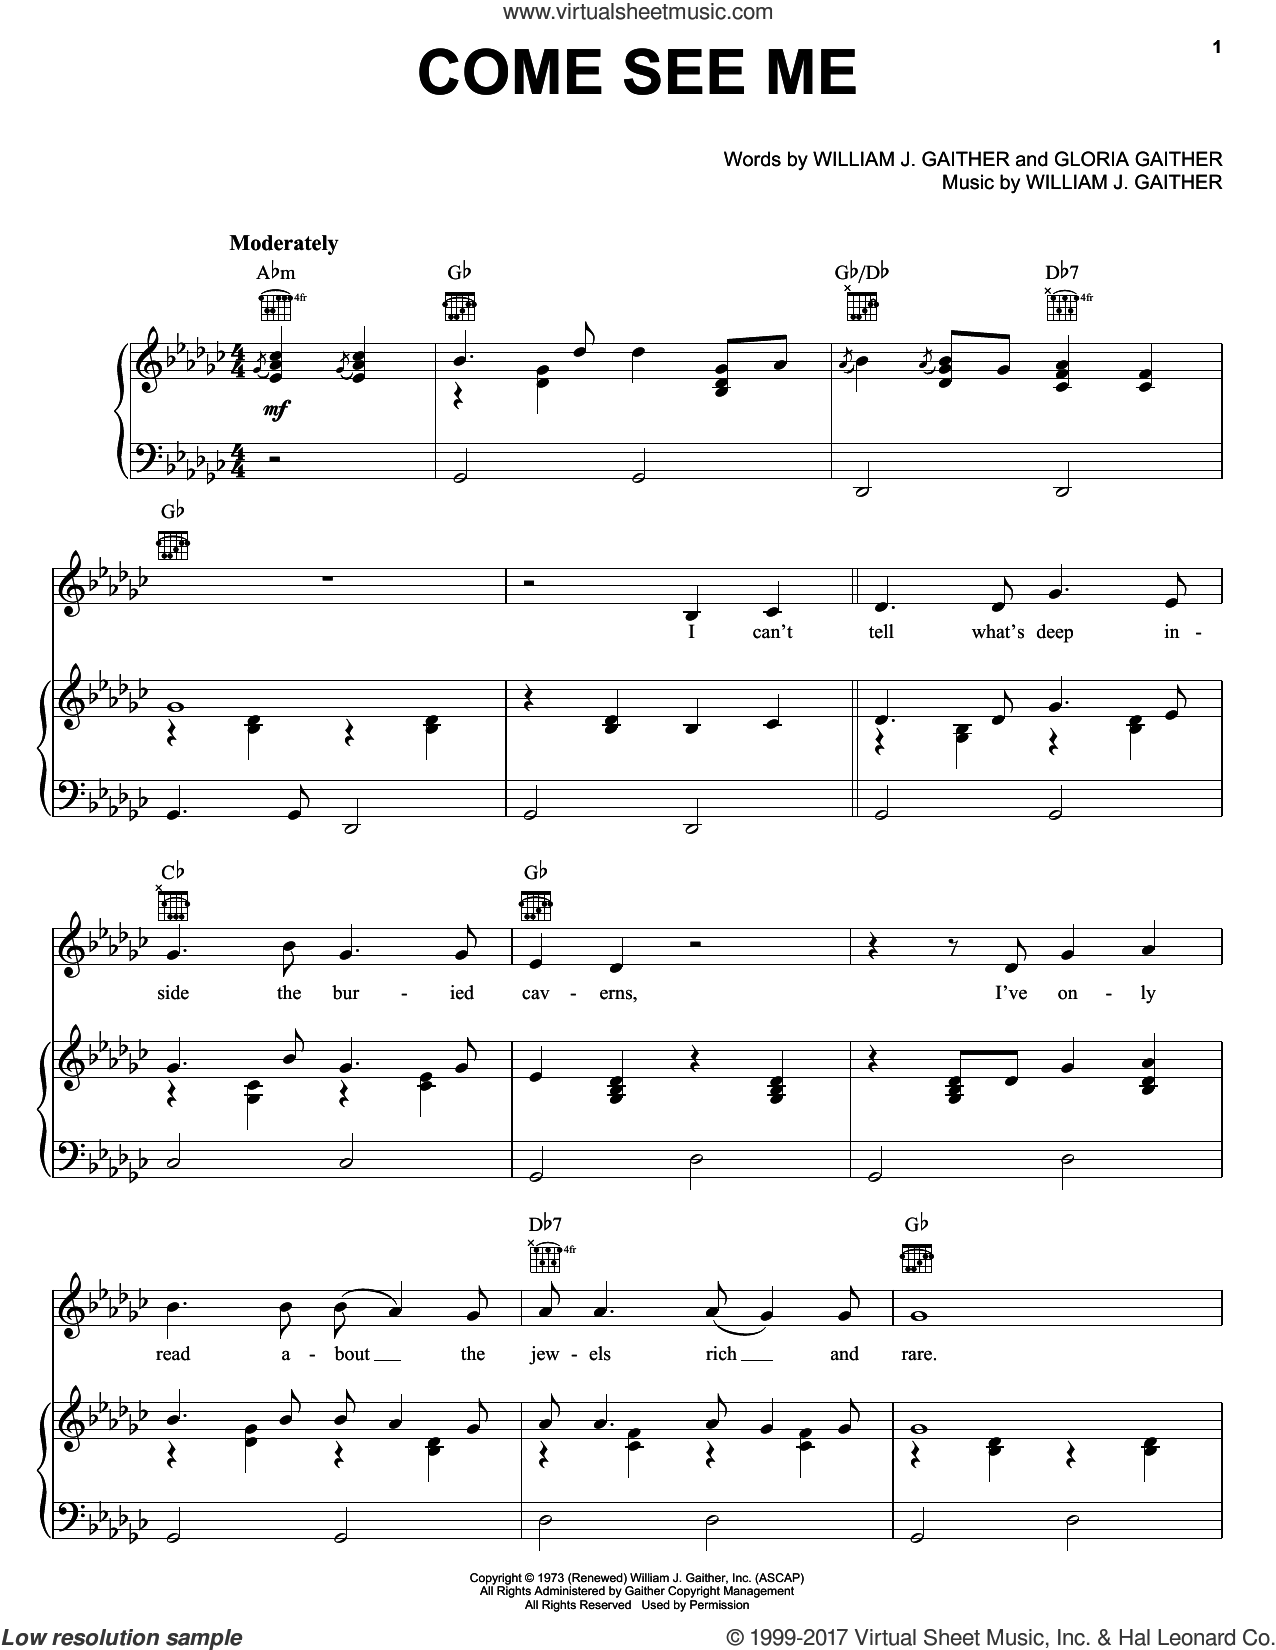 Come See Me sheet music for voice, piano or guitar by William J. Gaither, The Hoppers and Gloria Gaither. Score Image Preview.